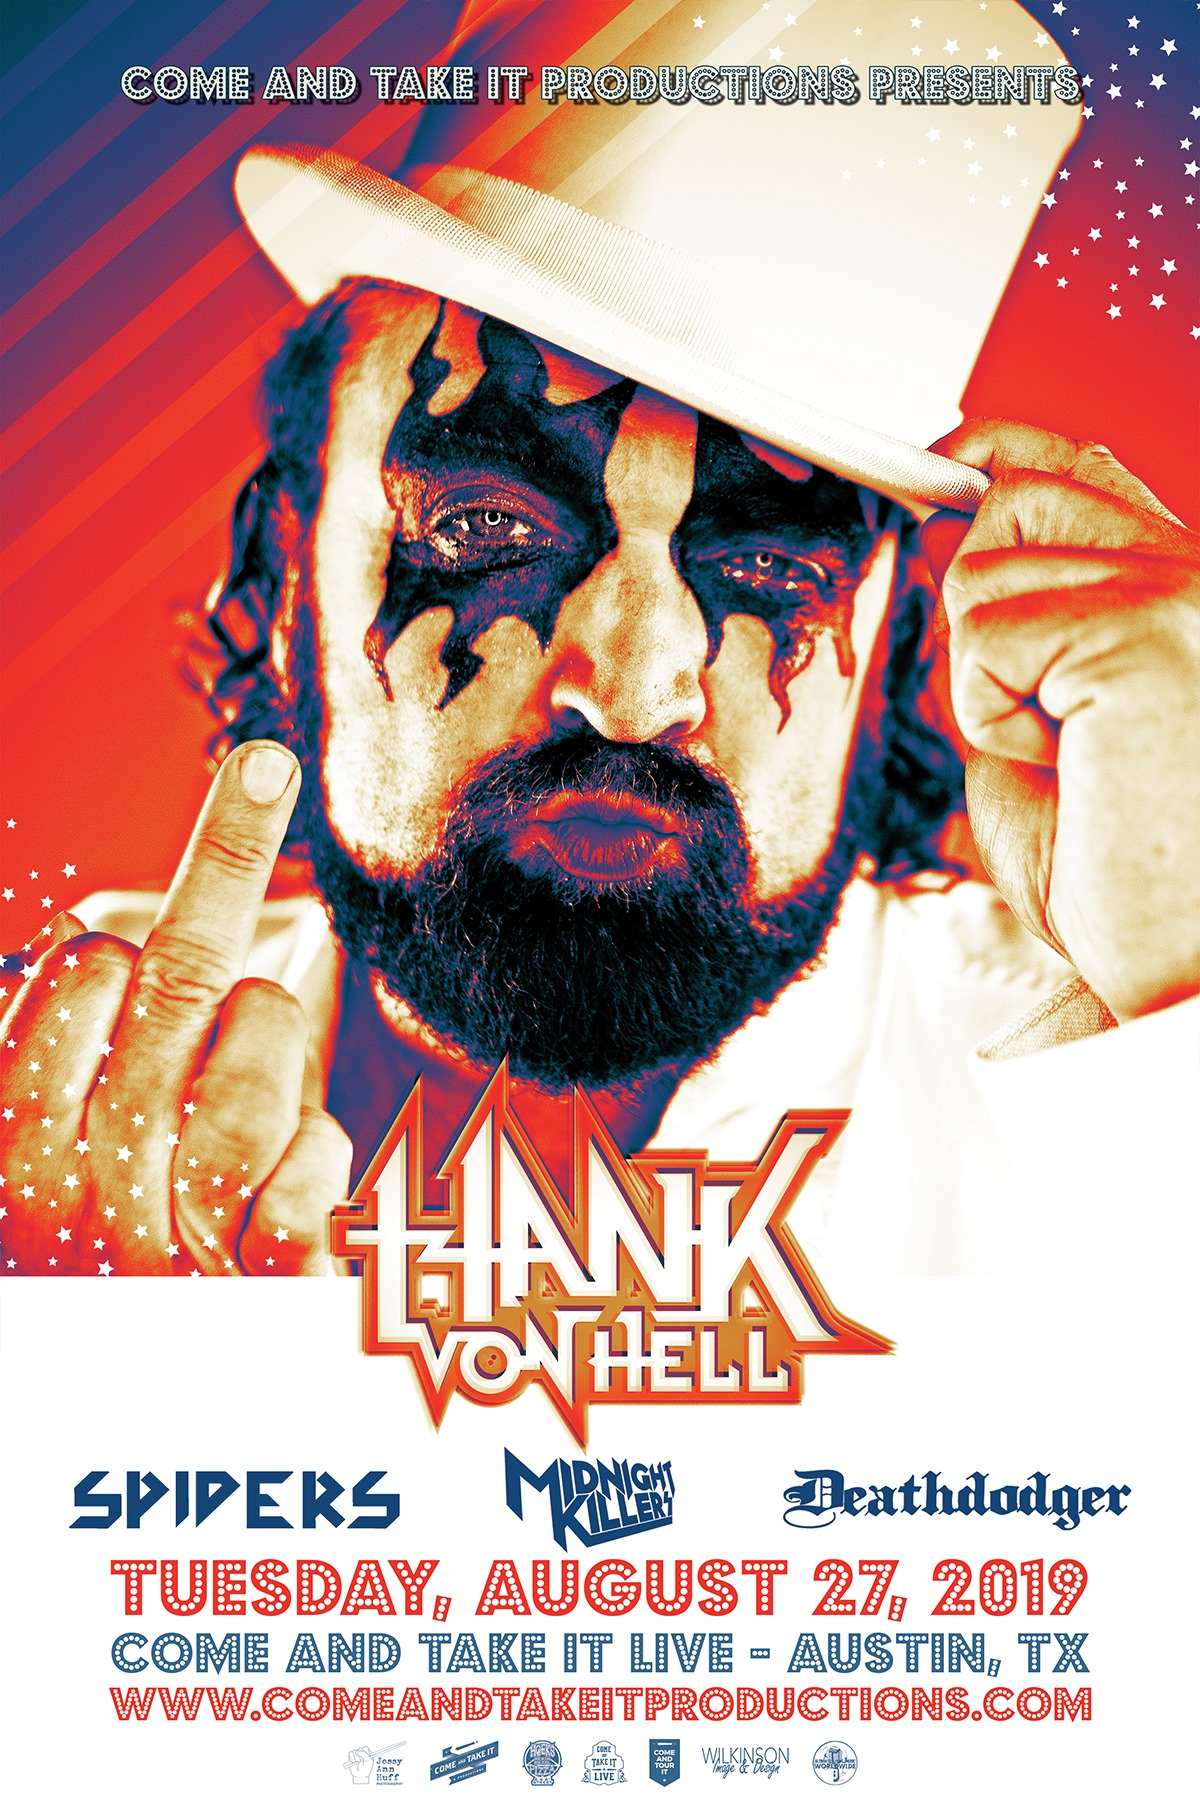 Hank Von Hell, Spiders, Midnight Killers and more